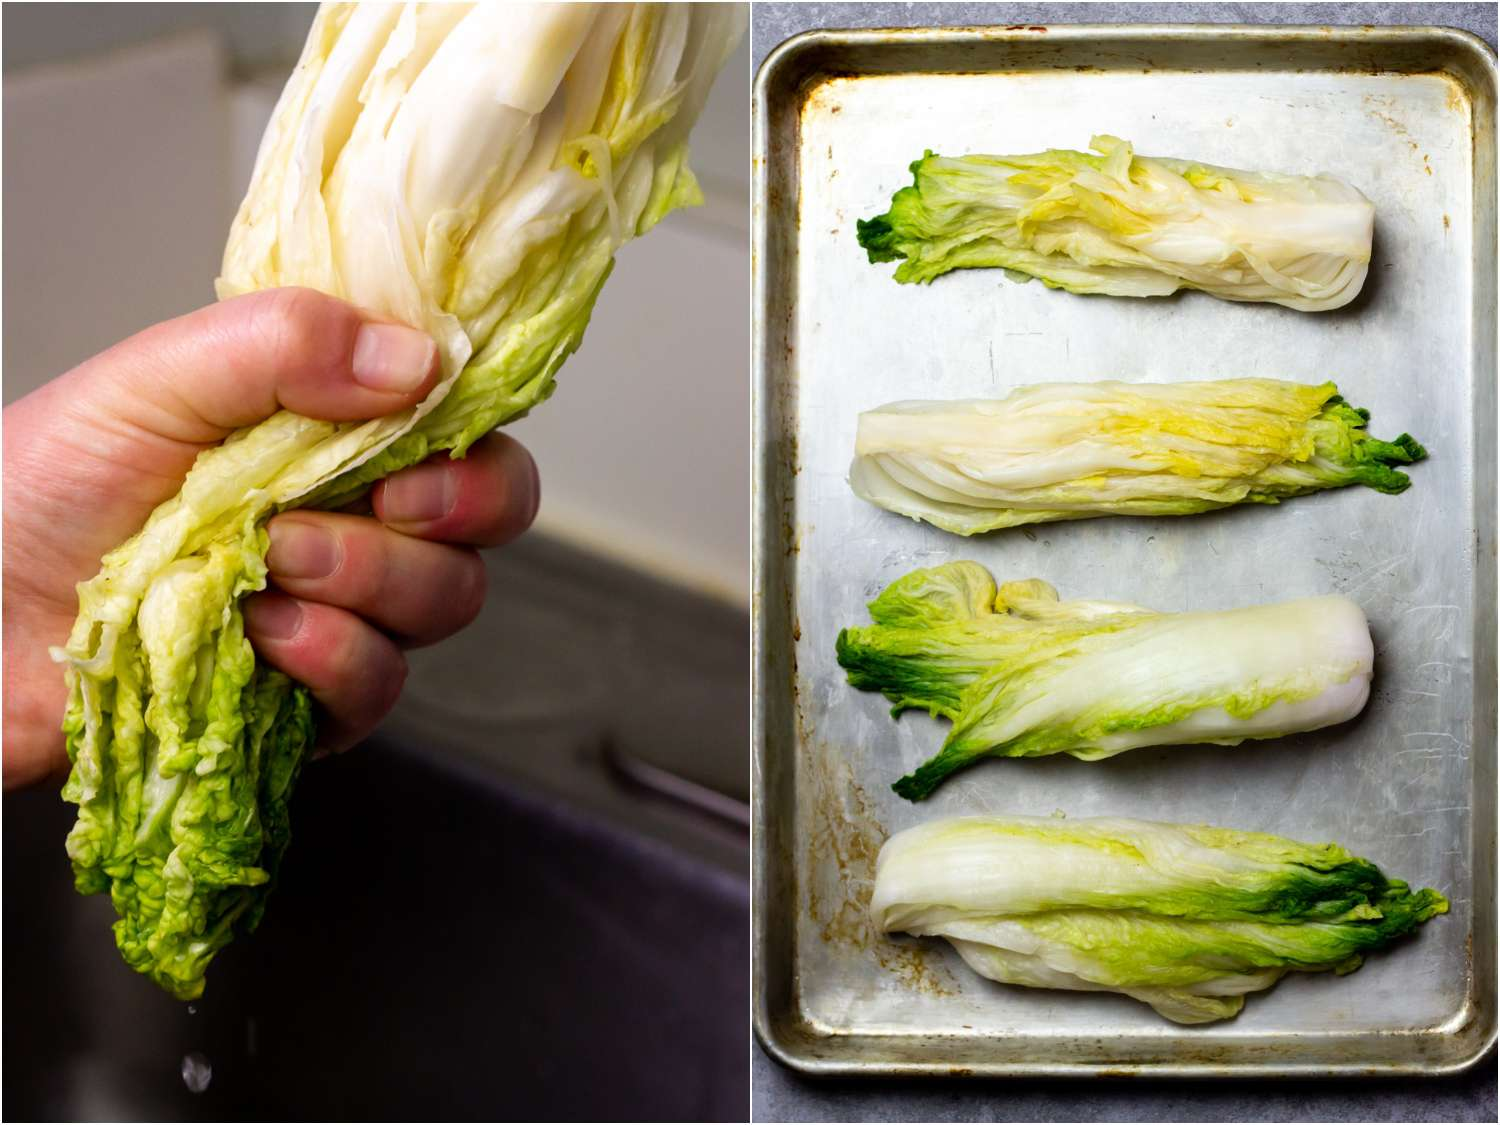 collage: a hand squeezing the liquid out of rinsed cabbage; 4 wet quarters of cabbage on a sheet tray